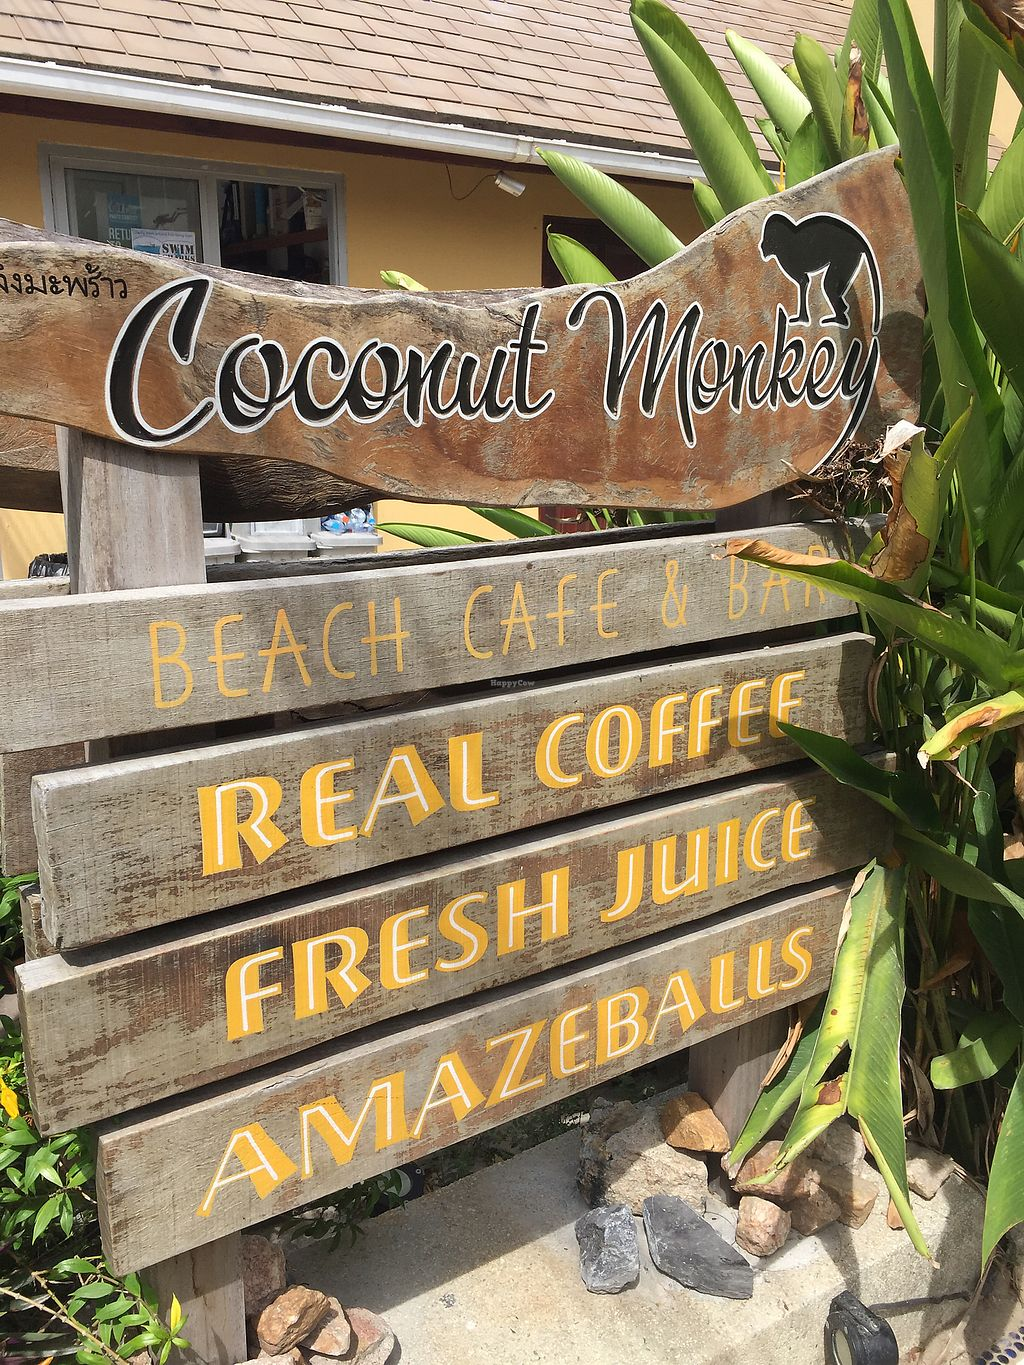 """Photo of Coconut Monkey  by <a href=""""/members/profile/SofieRed"""">SofieRed</a> <br/>entrance <br/> August 26, 2017  - <a href='/contact/abuse/image/73003/297296'>Report</a>"""